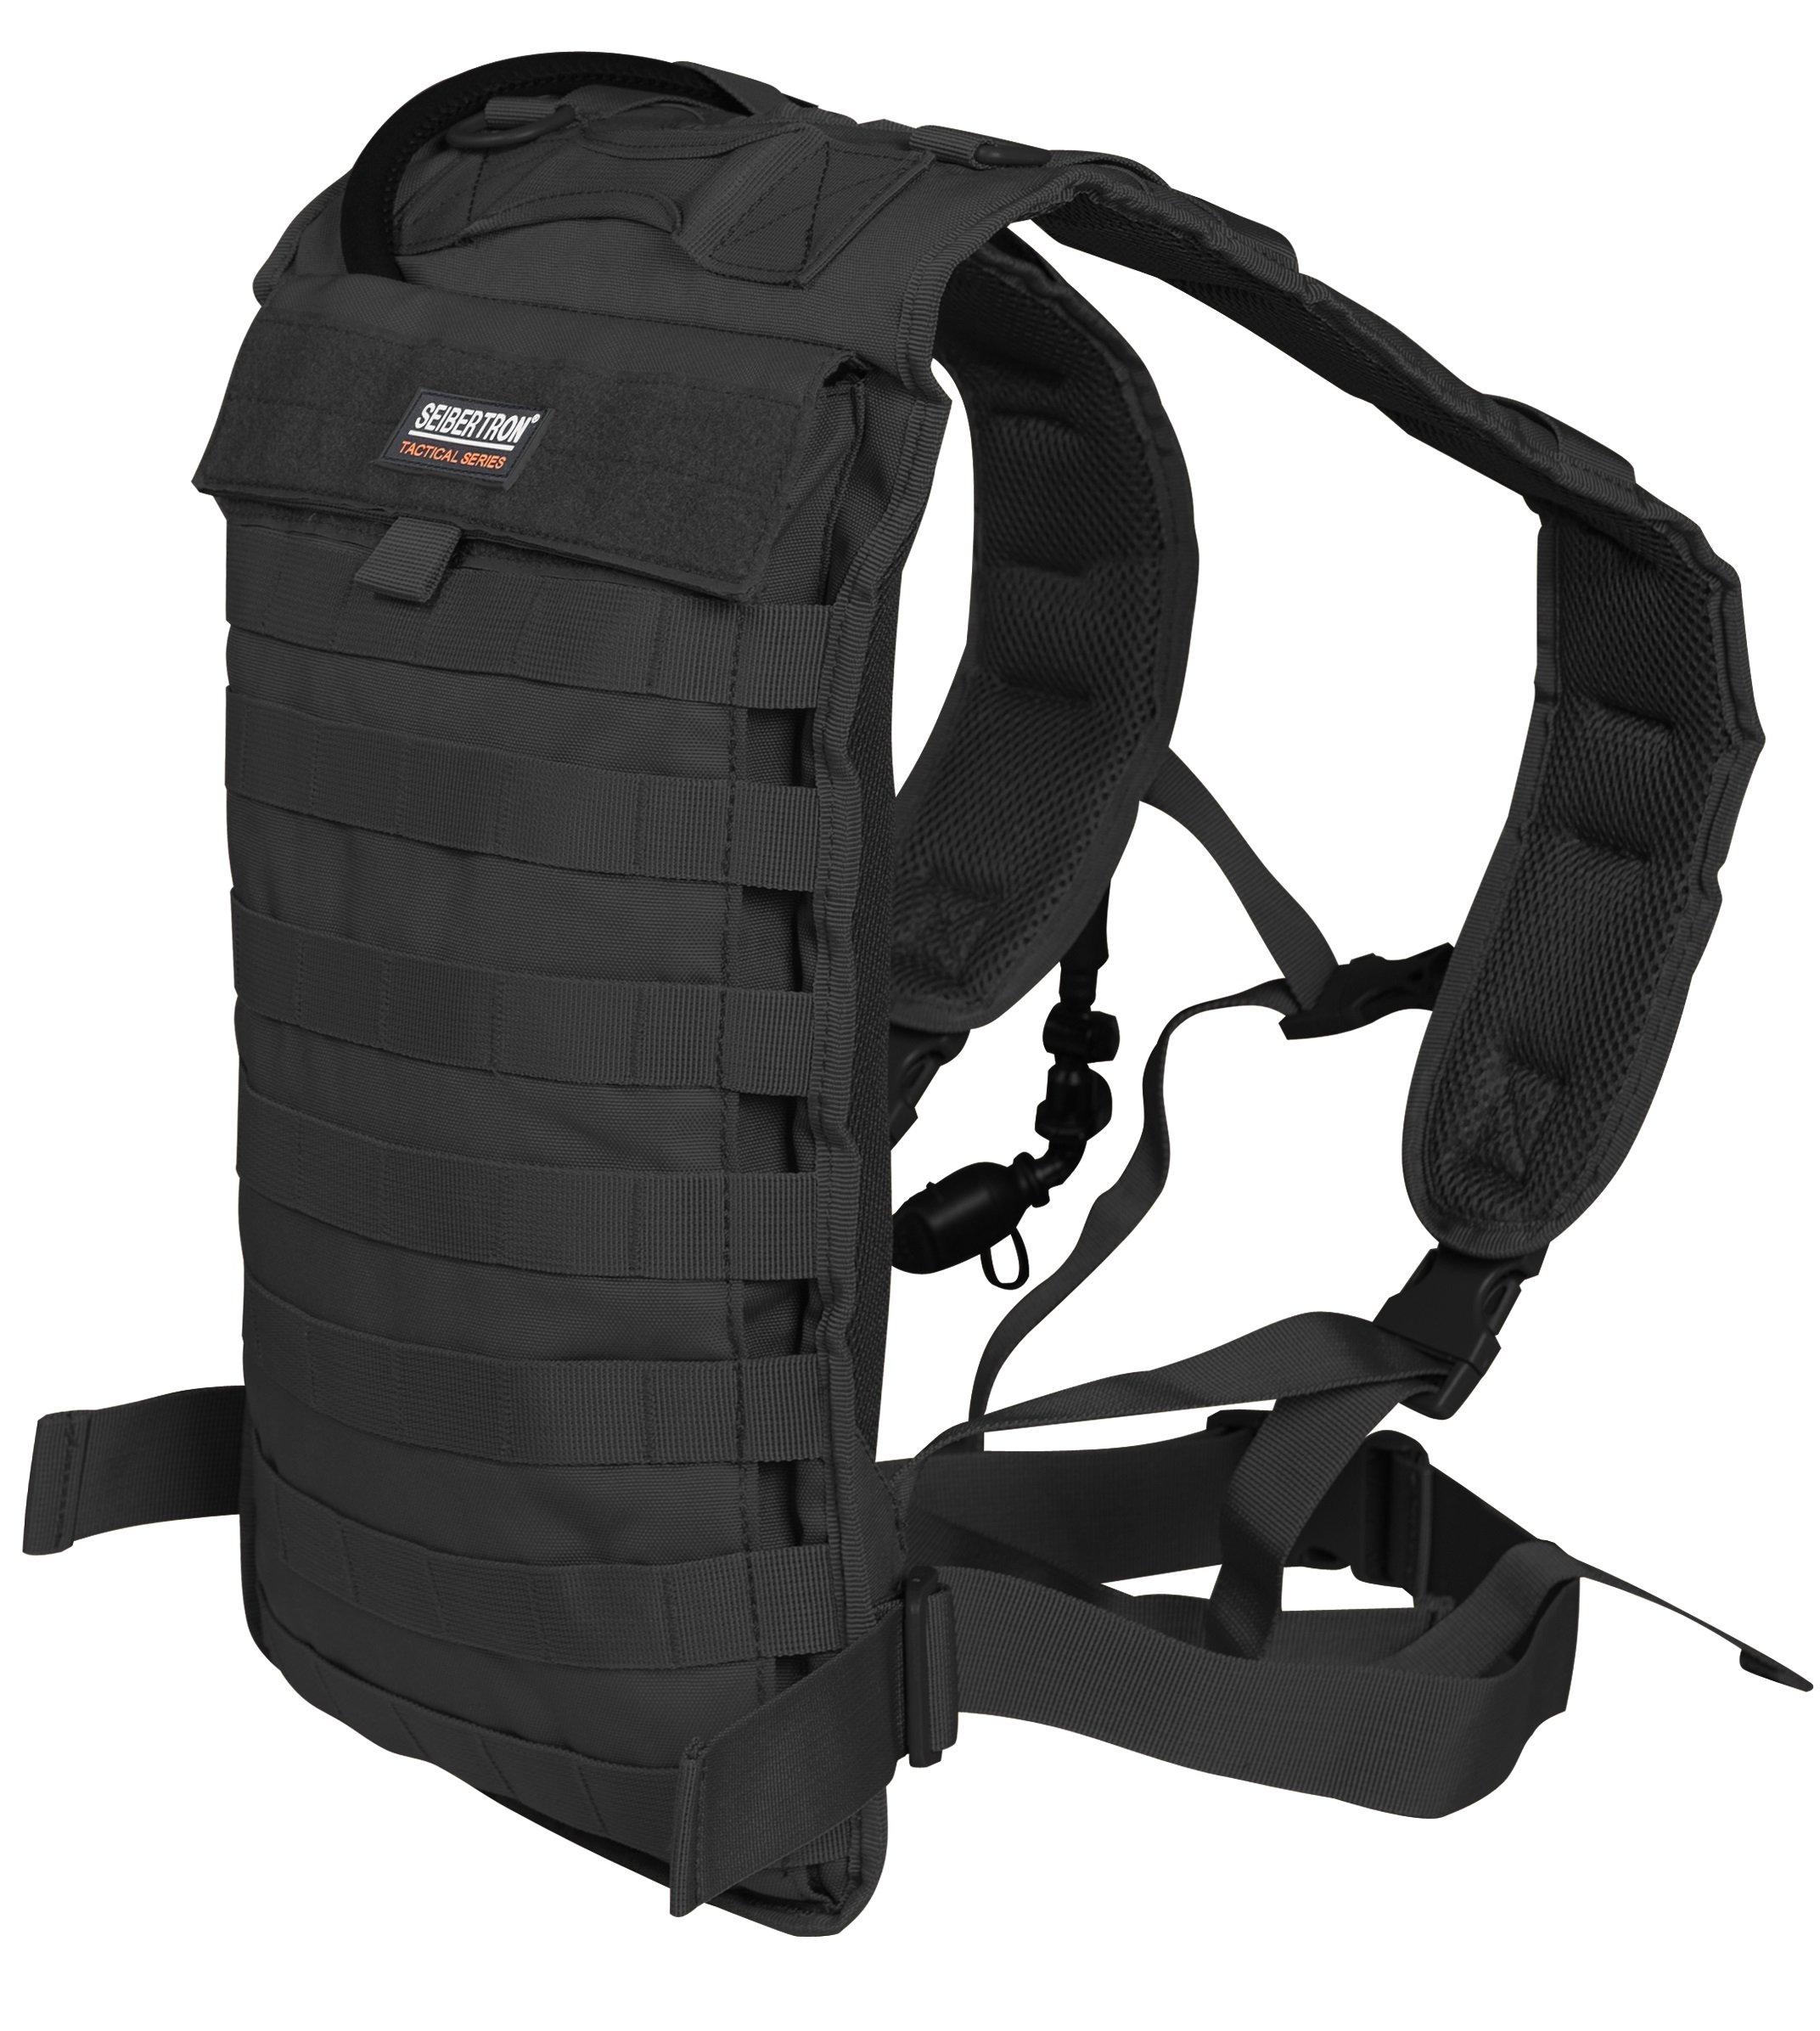 Seibertron Tactical Molle Hydration Carrier Pack Backpack Great for Outdoor Sports of Running Hiking Camping Cycling Motorcycle Fit for Seibertron 2L or 2.5L water bladder(not included) Black